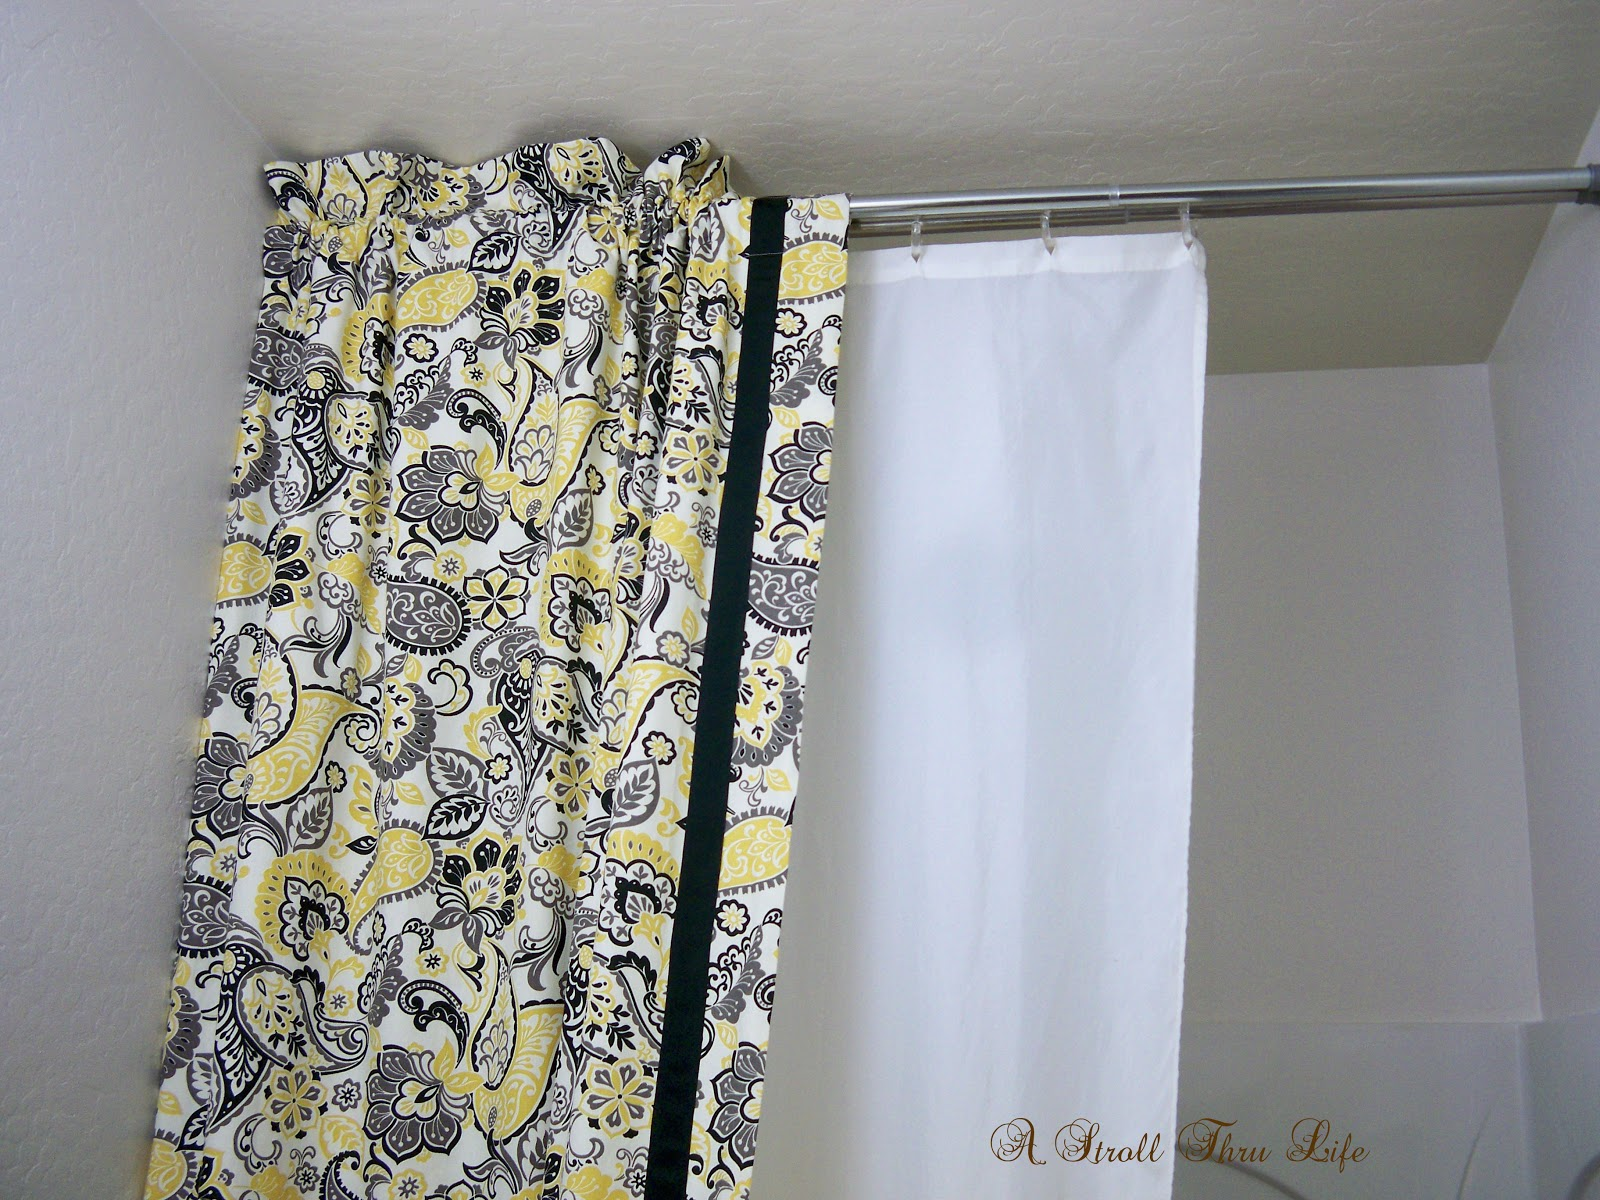 A Stroll Thru Life: DIY Double Shower Curtain & Liner Tutorial